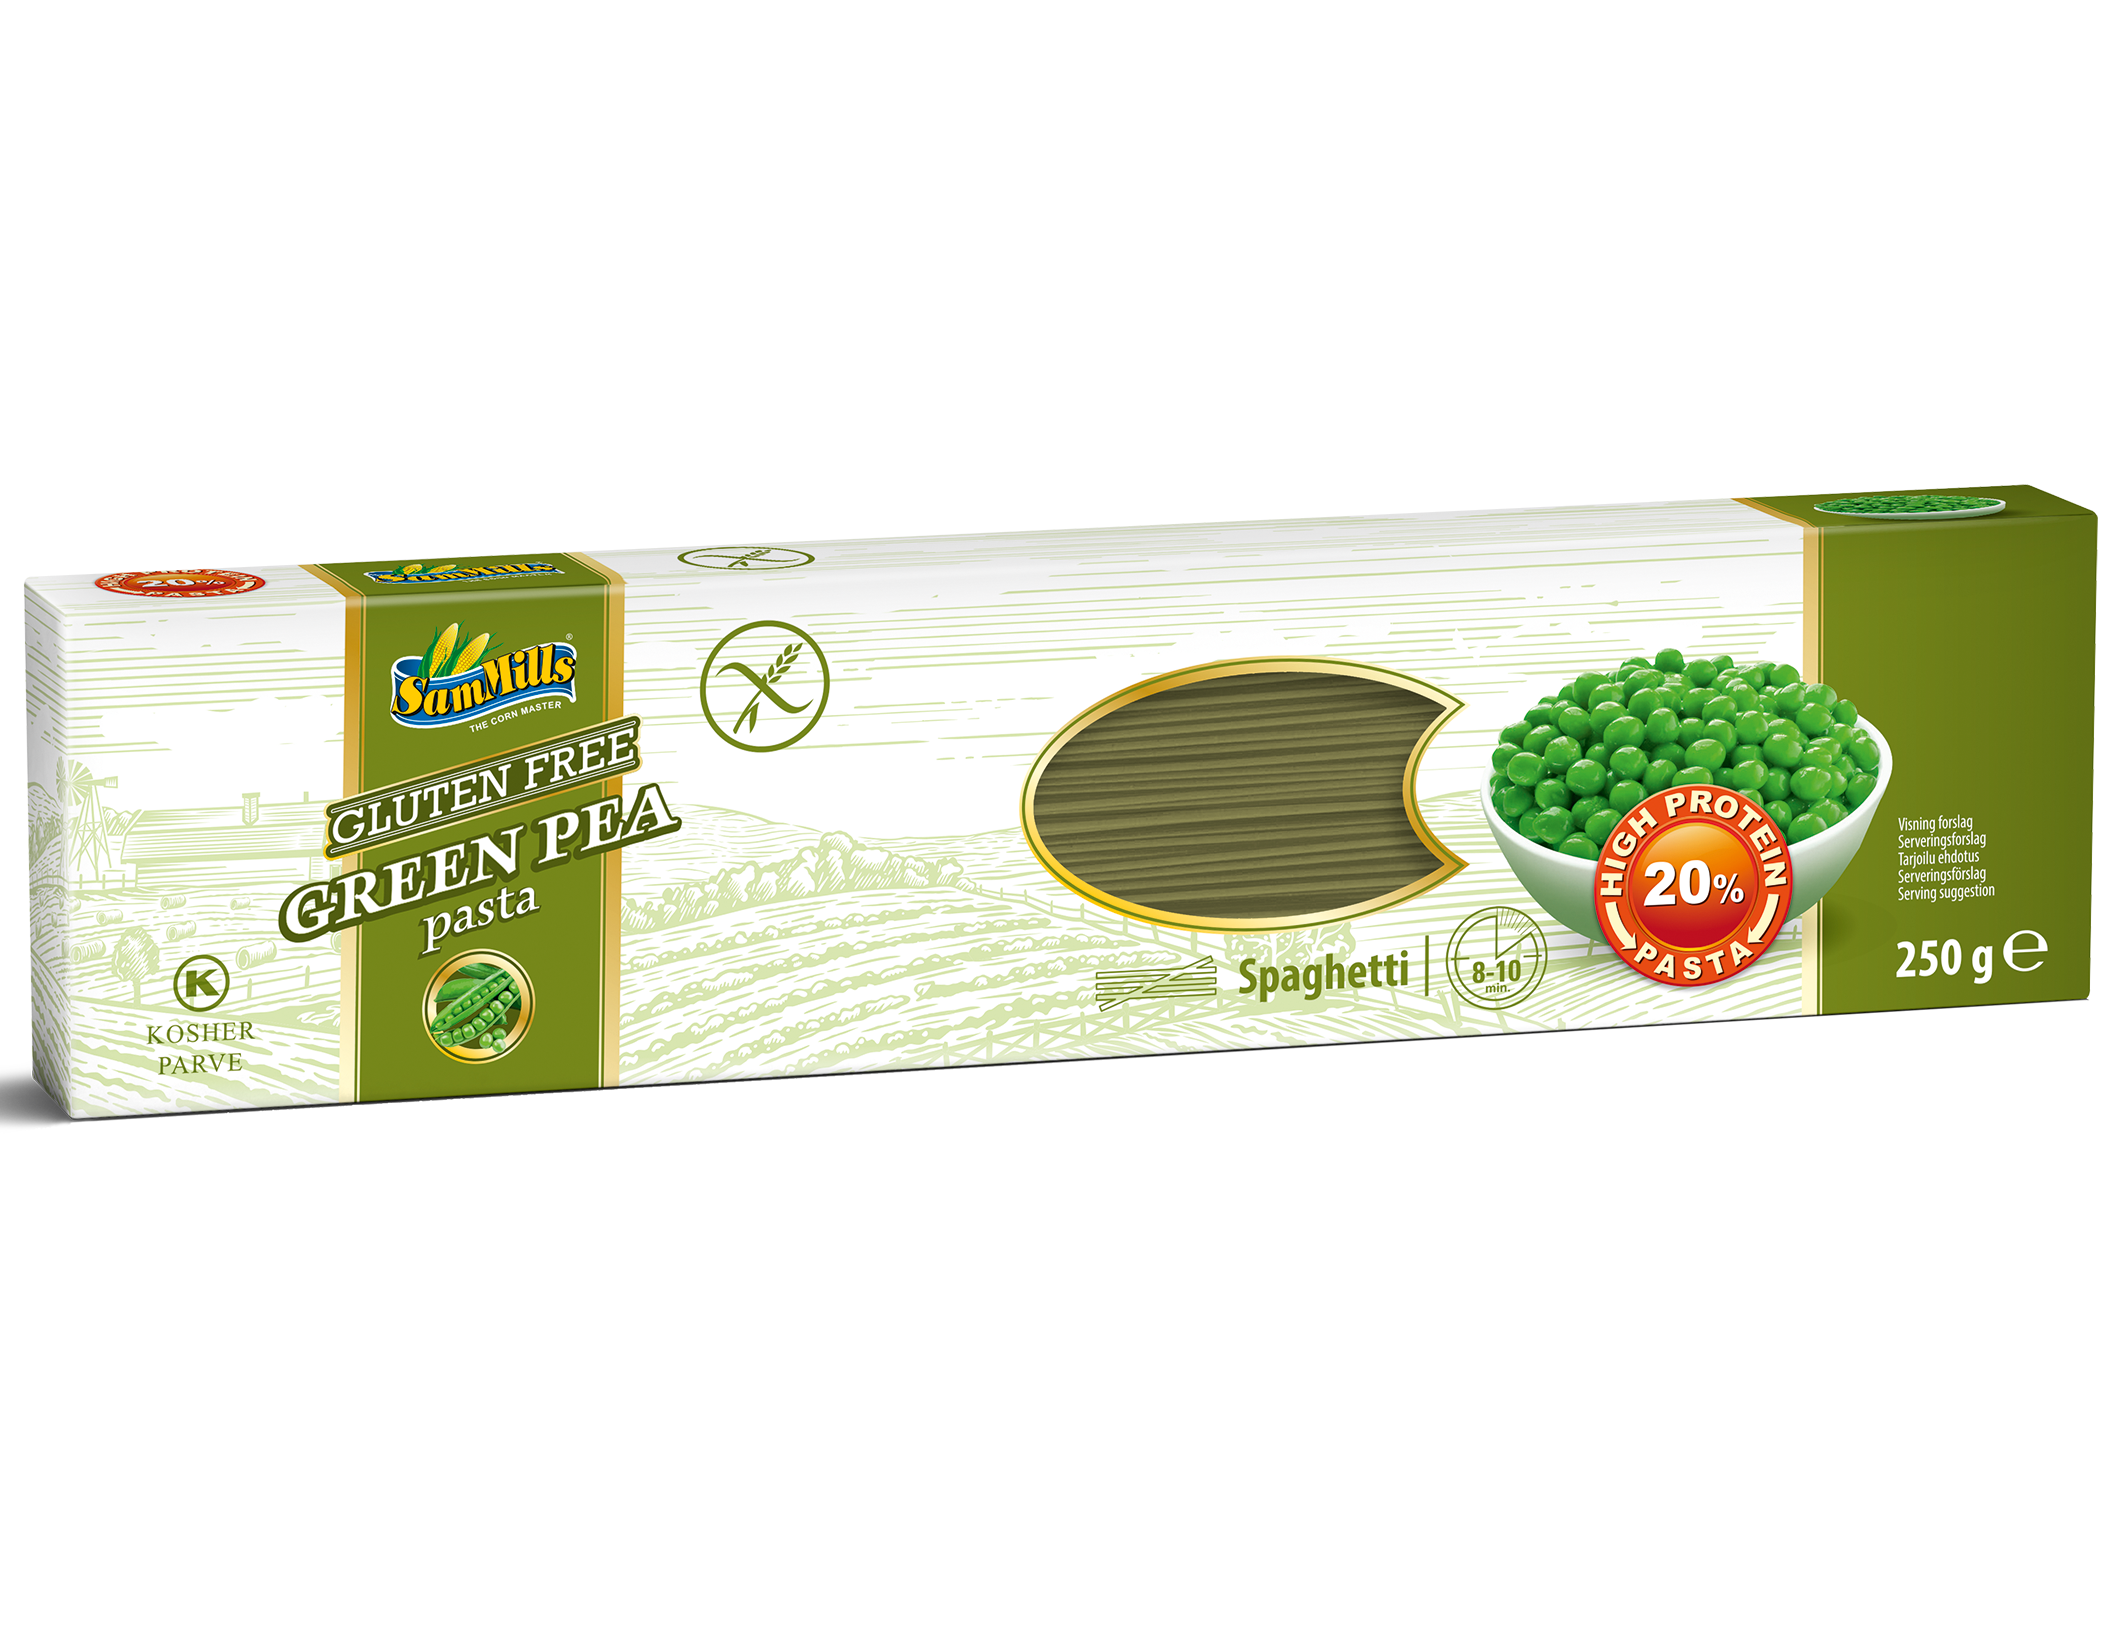 3D GreenPea Spaghetti.Scan  Products Line